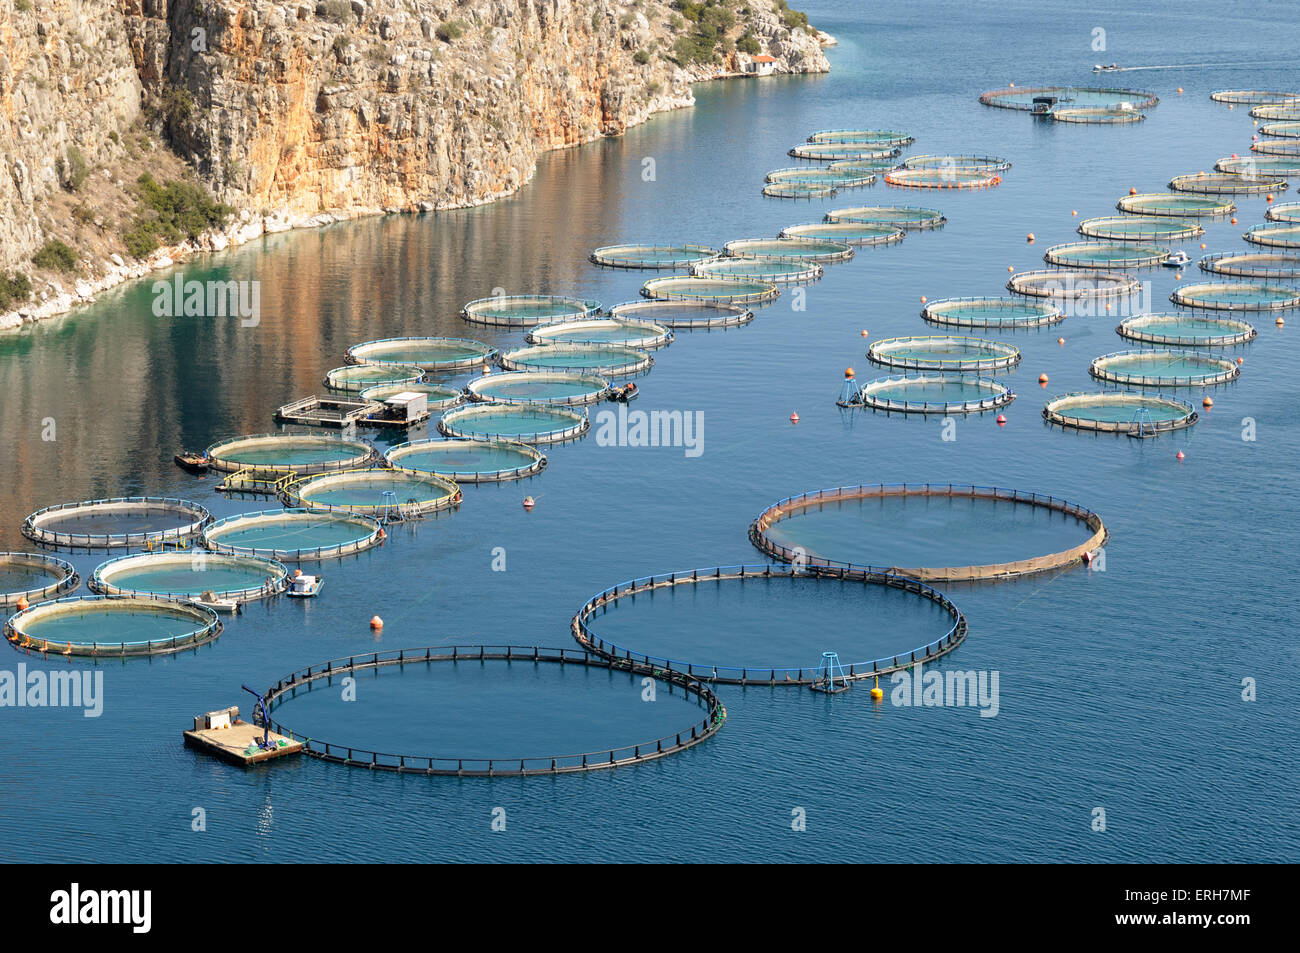 Offshore sea bream and bass fish farming greece stock for What is fish farming